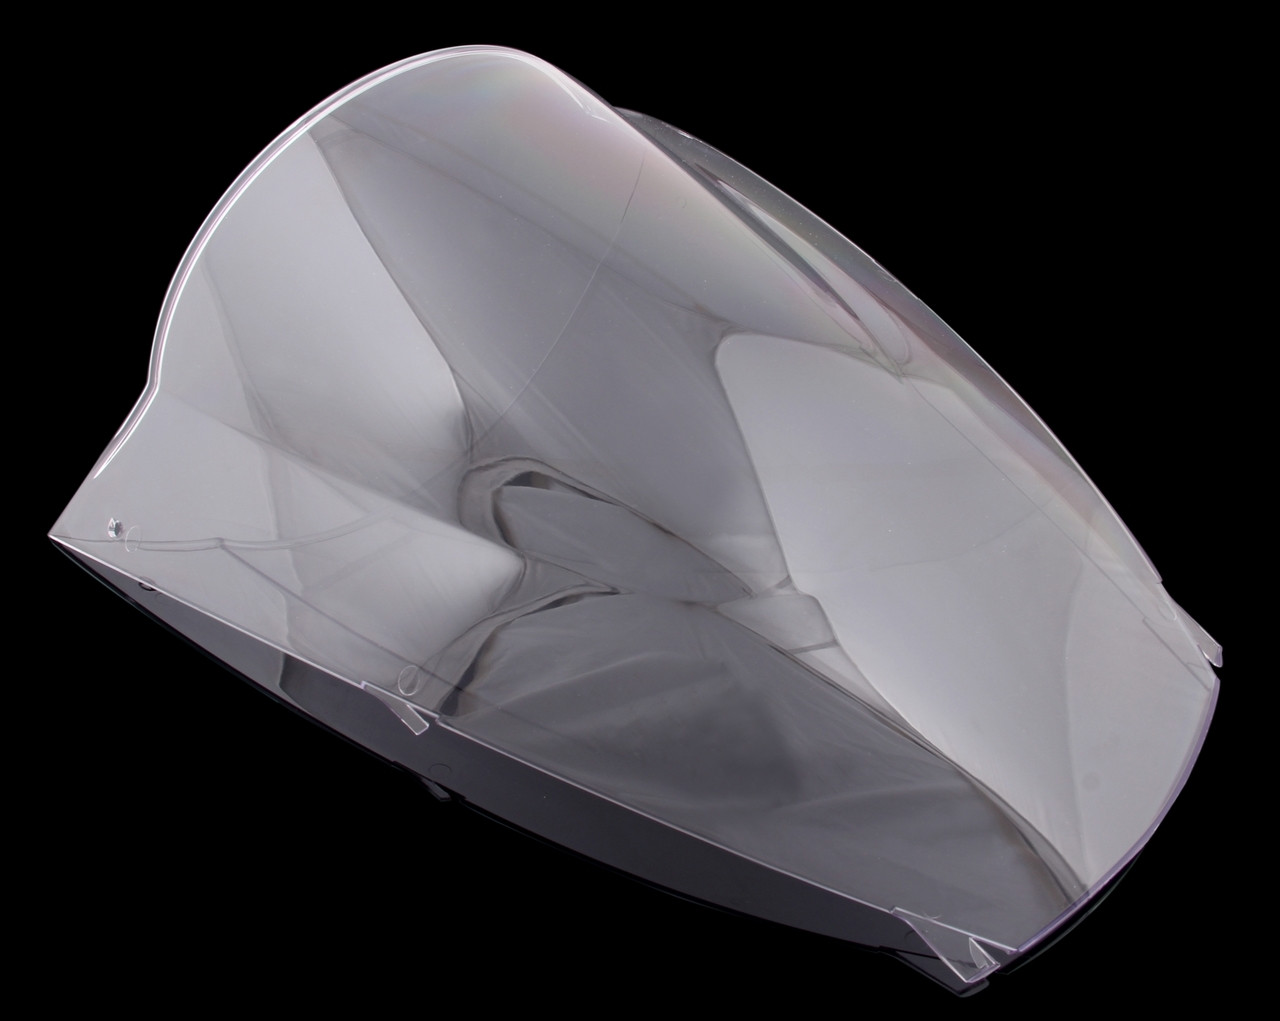 Windscreen Windshield Kawasaki Ninja ZX12 R (2002-2004), Double Bubble, Clear